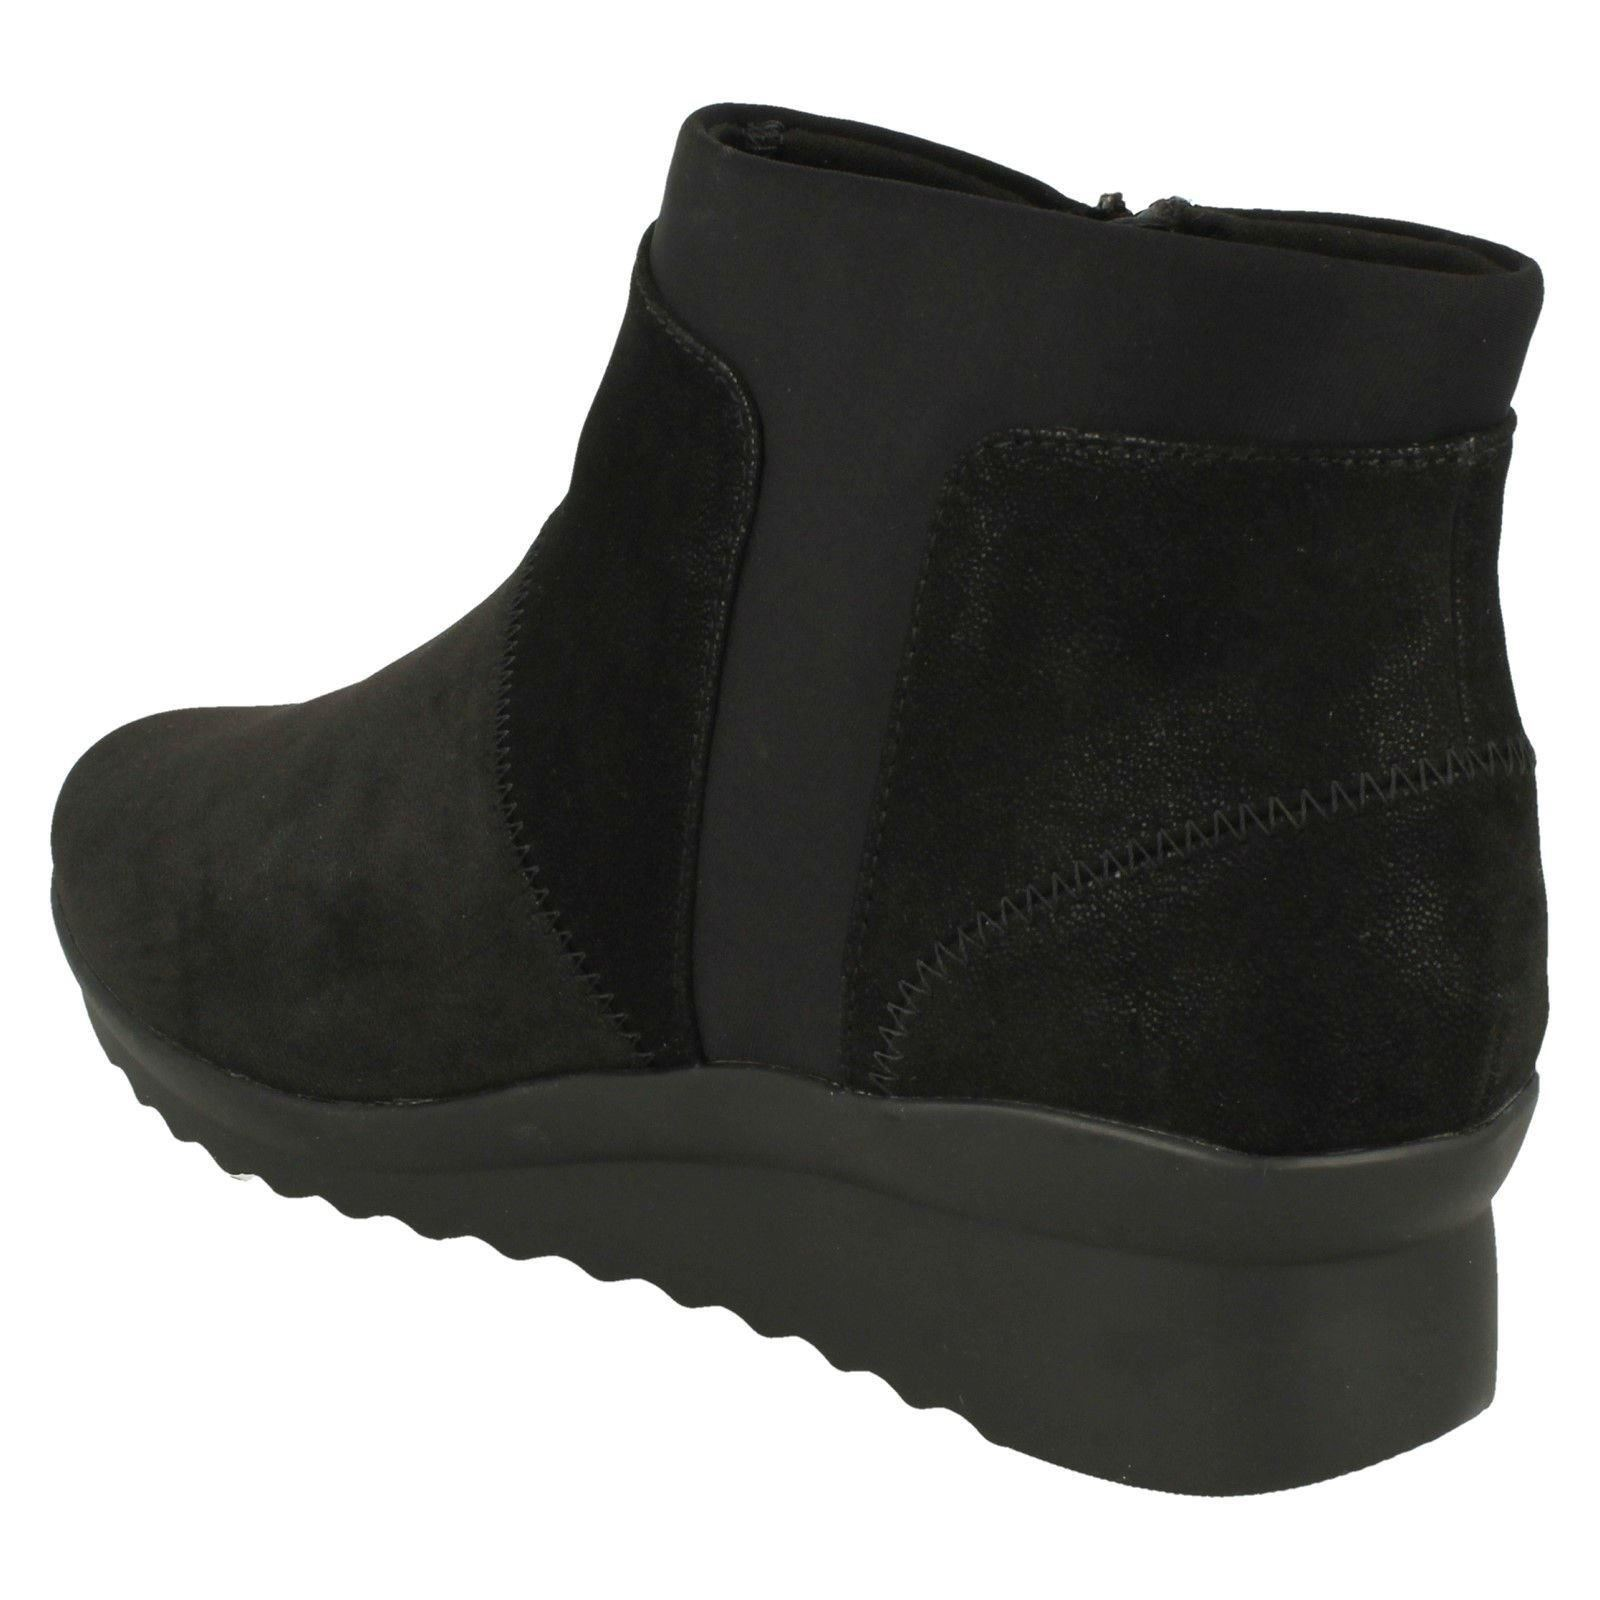 da4d6f7ad558 Ladies Clarks Cloud Steppers Ankle Boots - Caddell Sloane